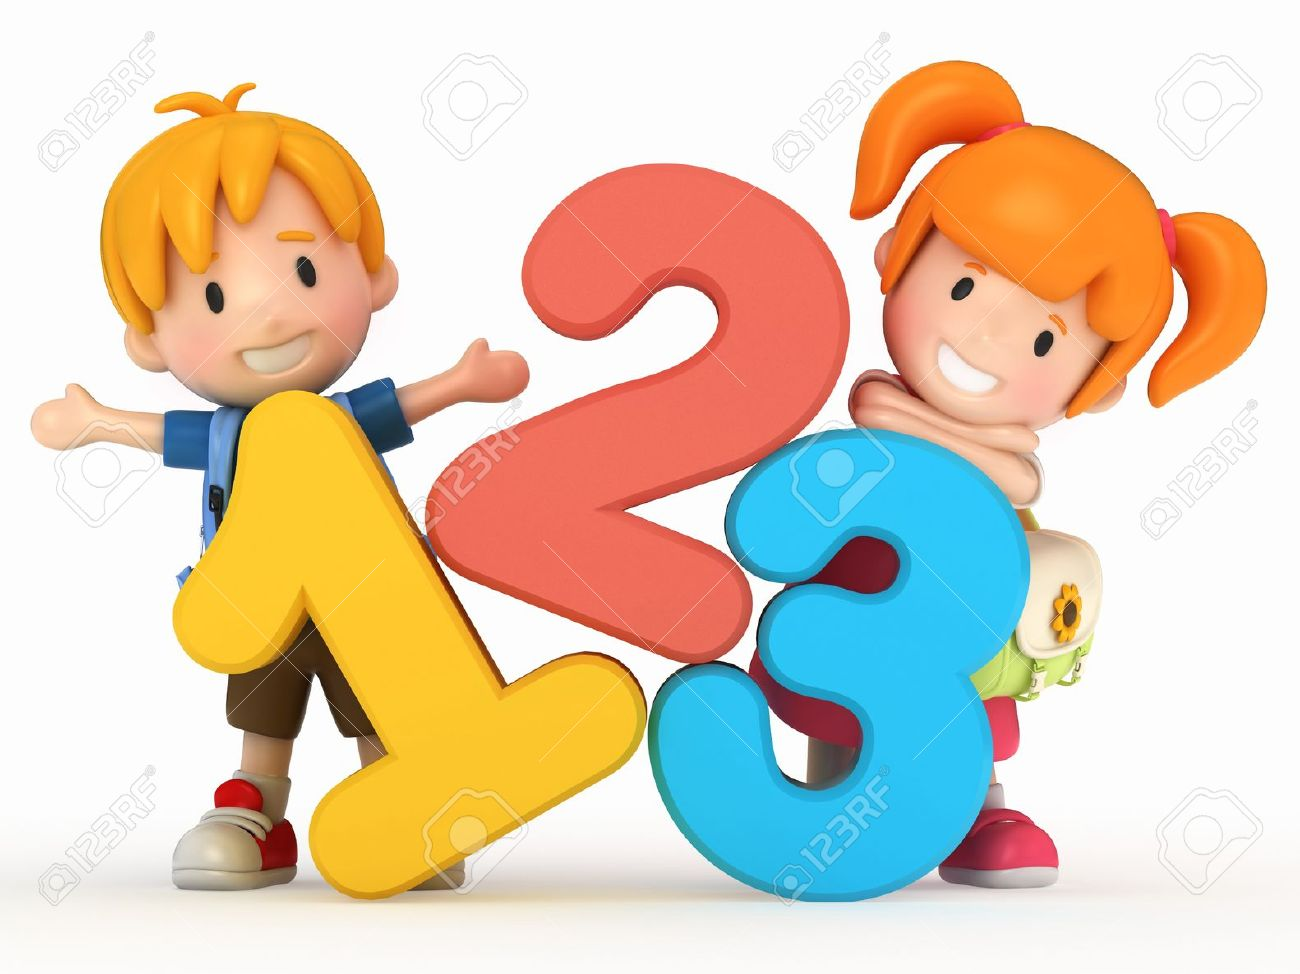 Kids learning numbers clipart